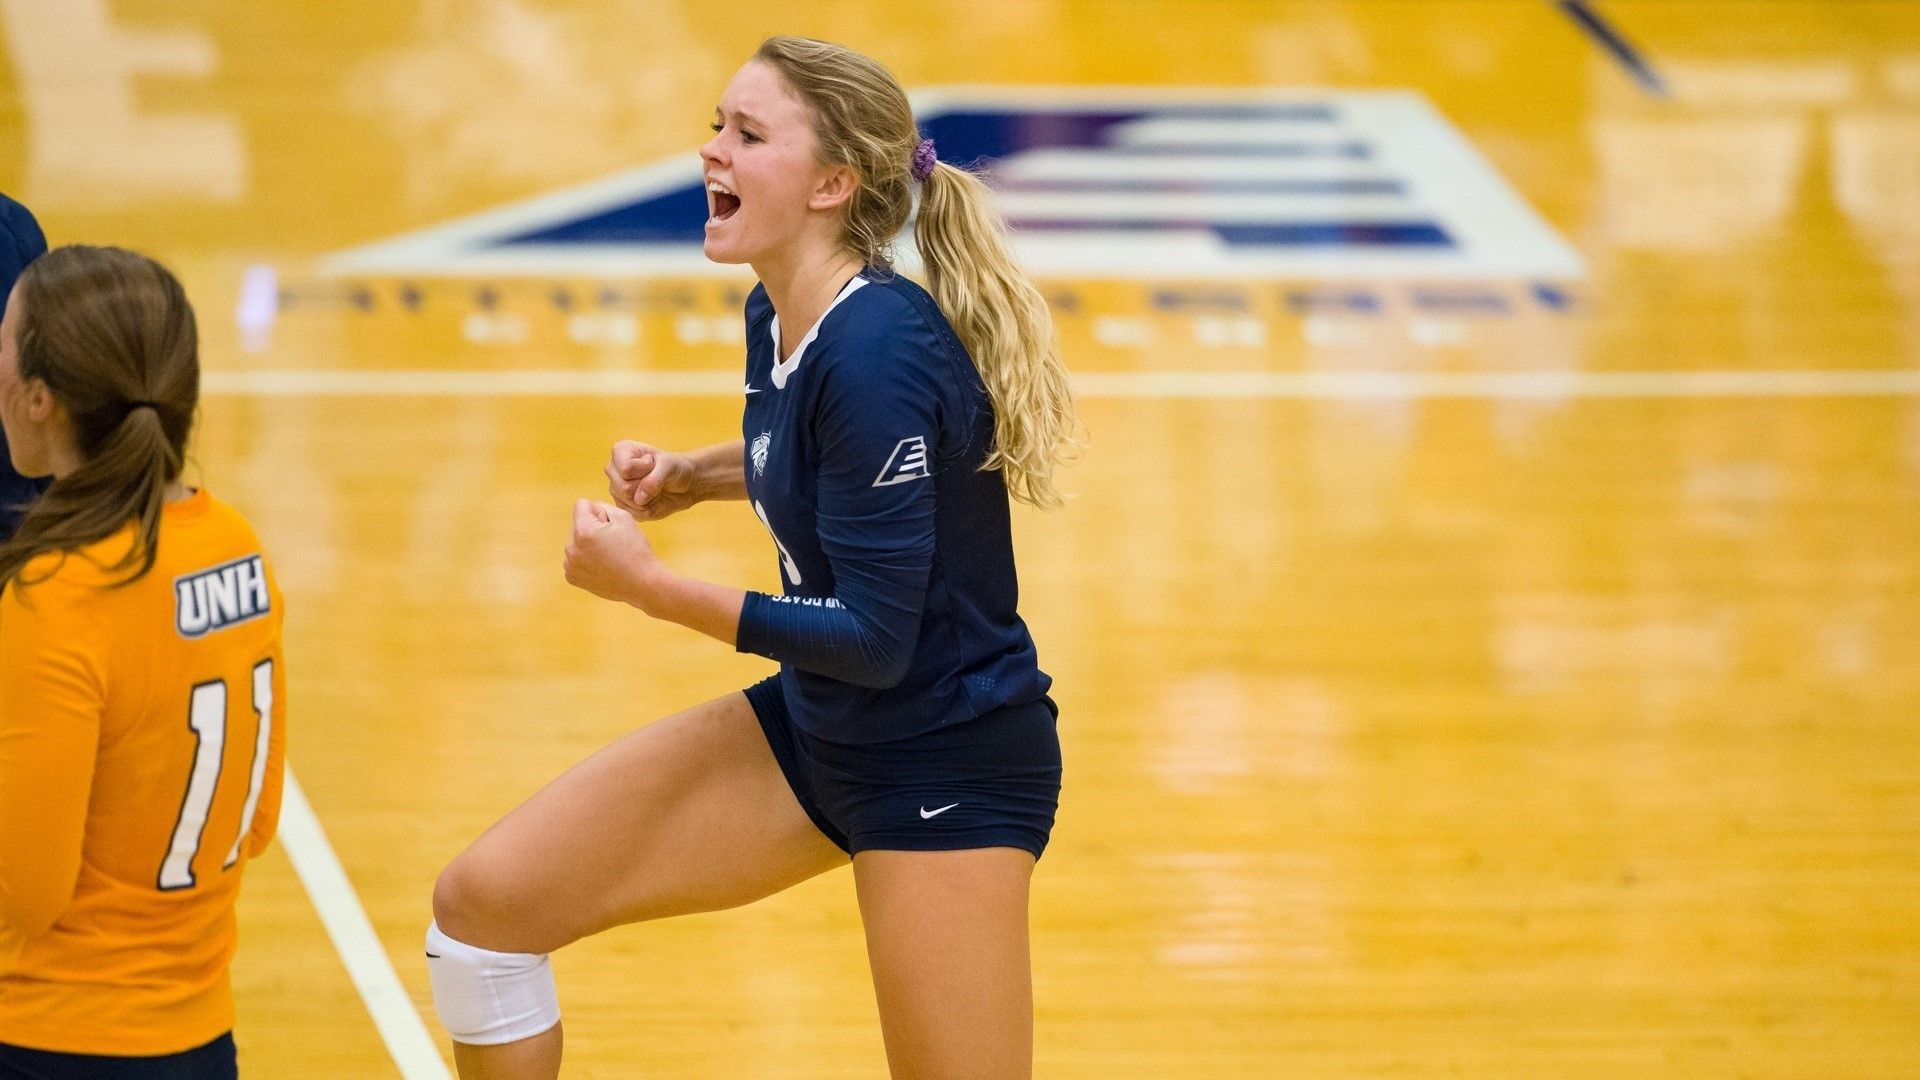 Tanski Shines Again In Four Set Victory Over Rutgers University Of New Hampshire Athletics Volleyball News University Of New Hampshire Athlete